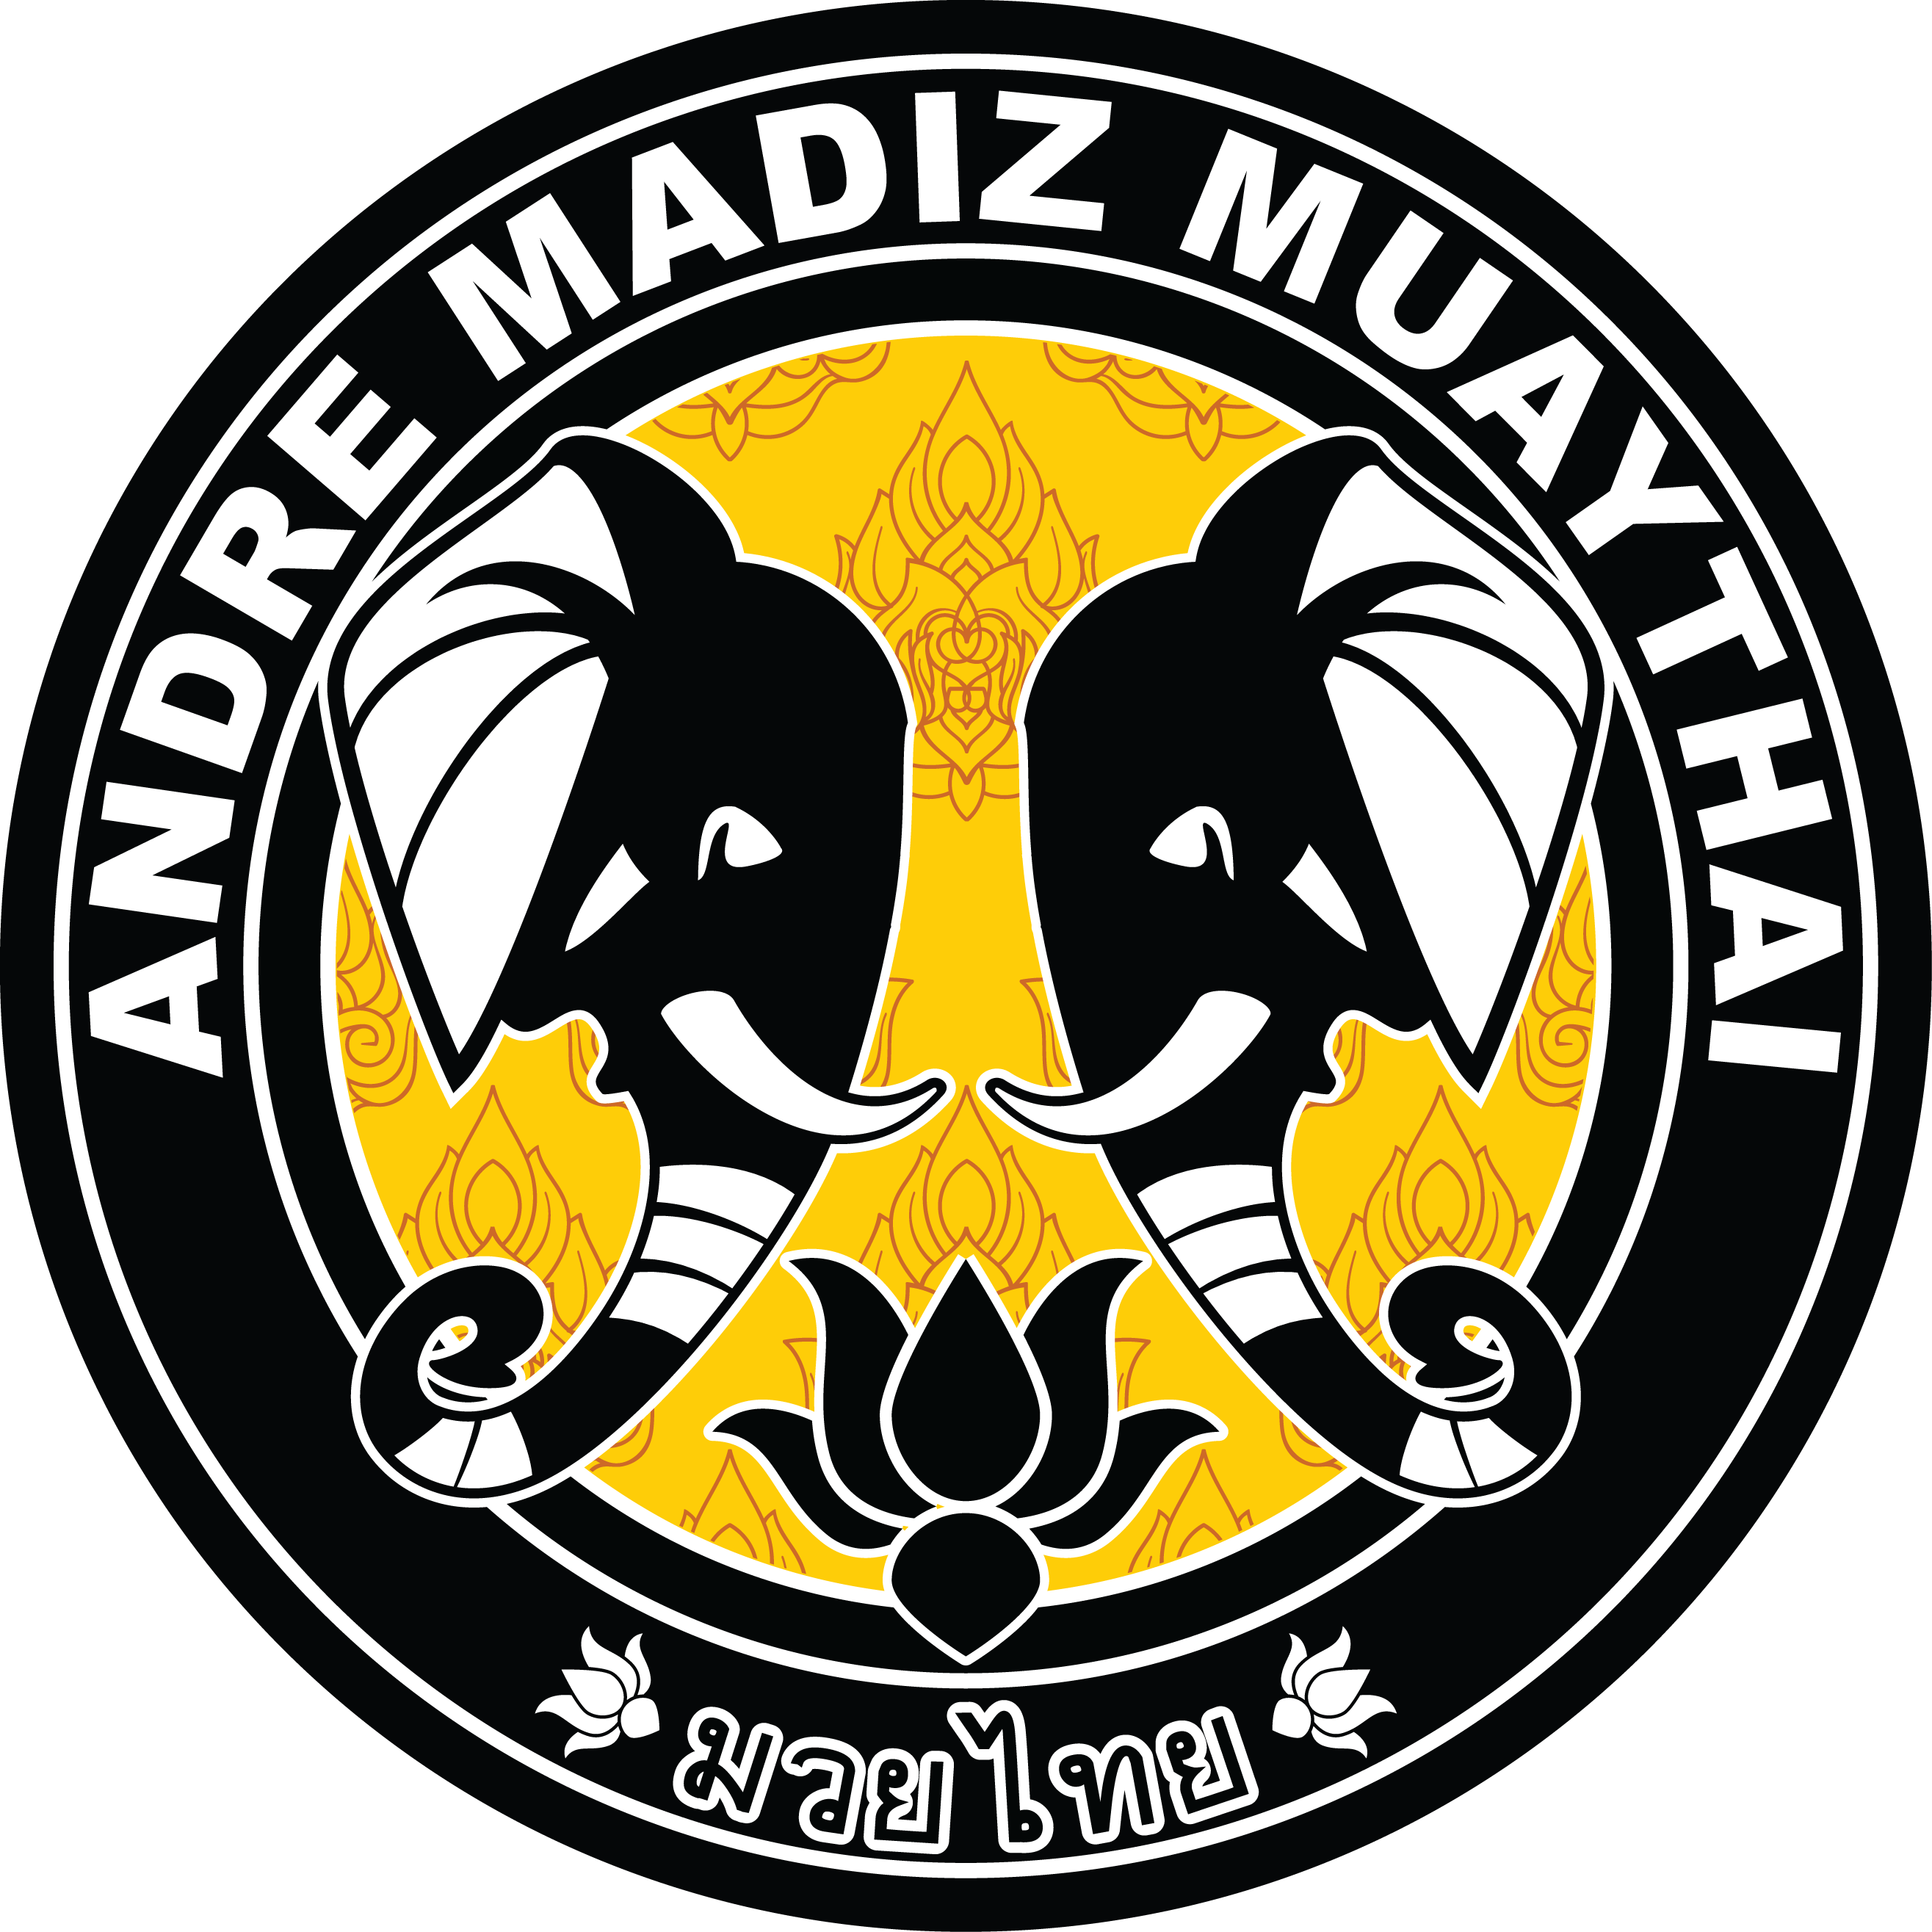 Andre Madiz Logo Featuring Two Elphant Heads Illustration